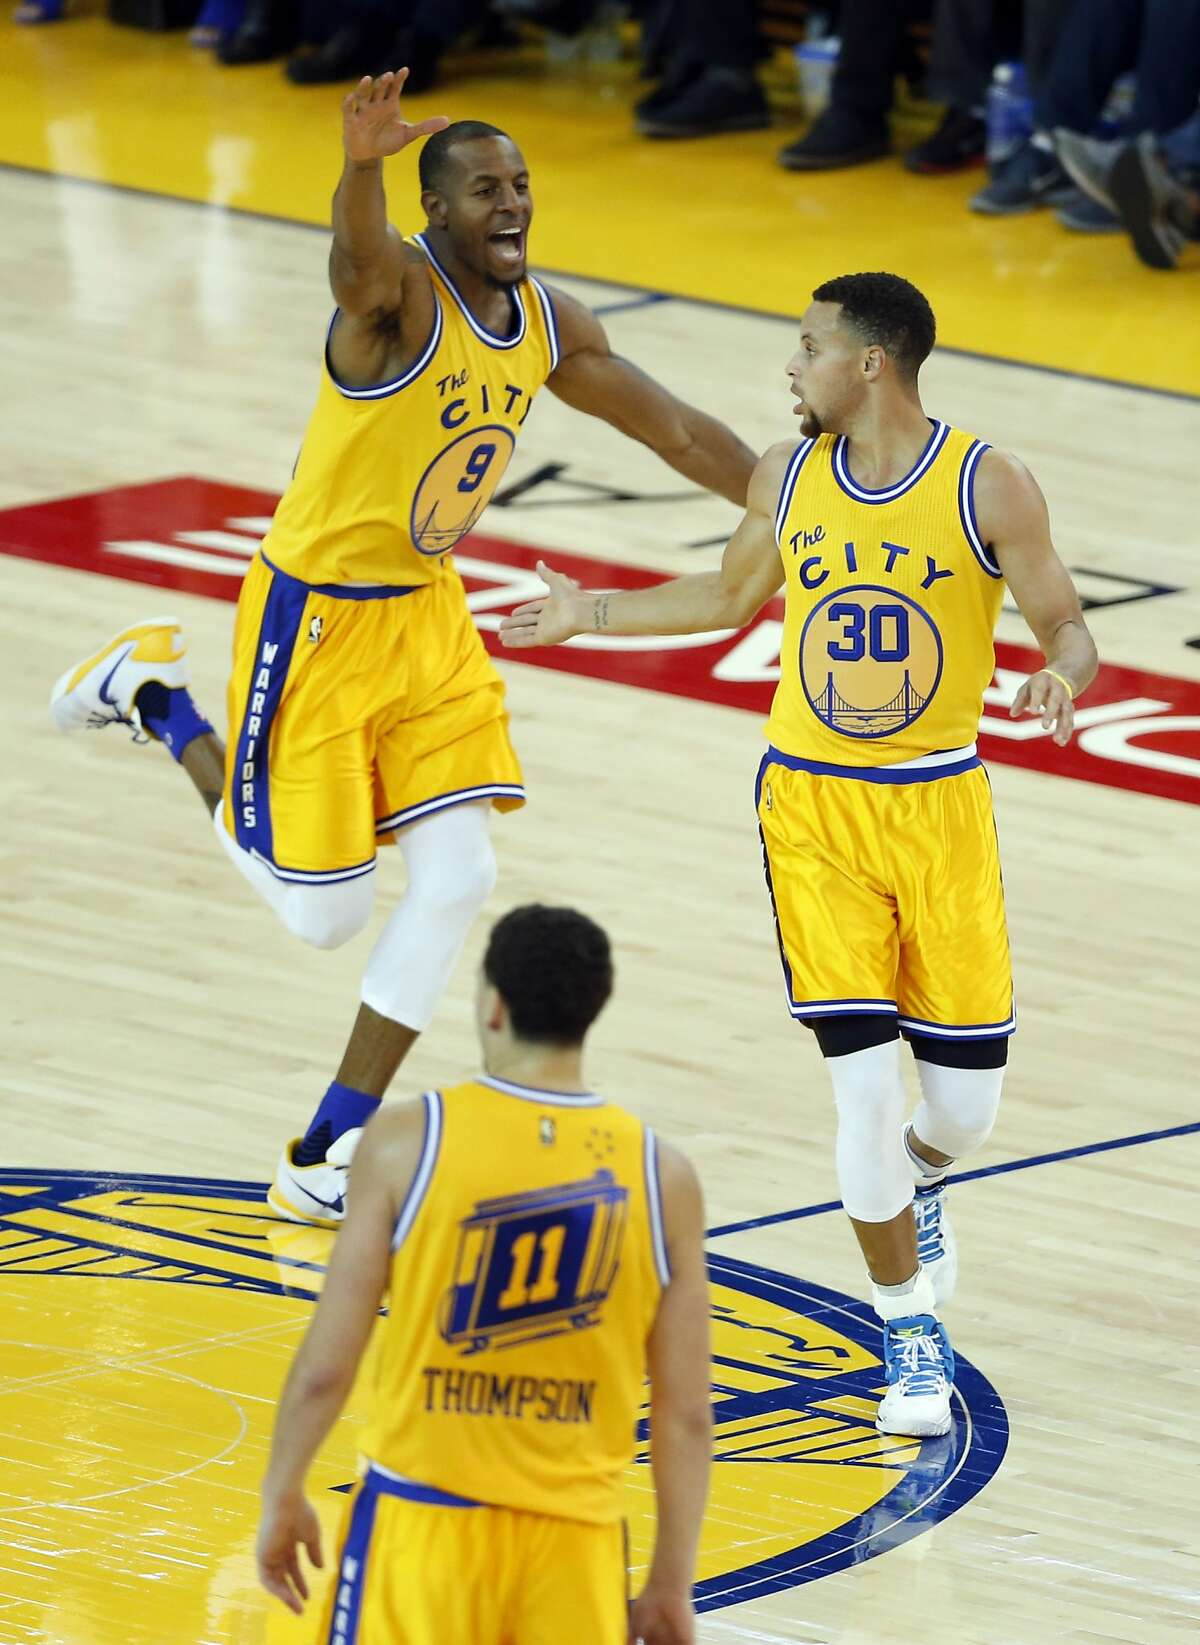 Golden State Warriors' Andre Iguodala celebrates his 3rd quarter basket that was assisted by Stephen Curry against Los Angeles Lakers during NBA game at Oracle Arena in Oakland, Calif., on Tuesday, November 24, 2015.